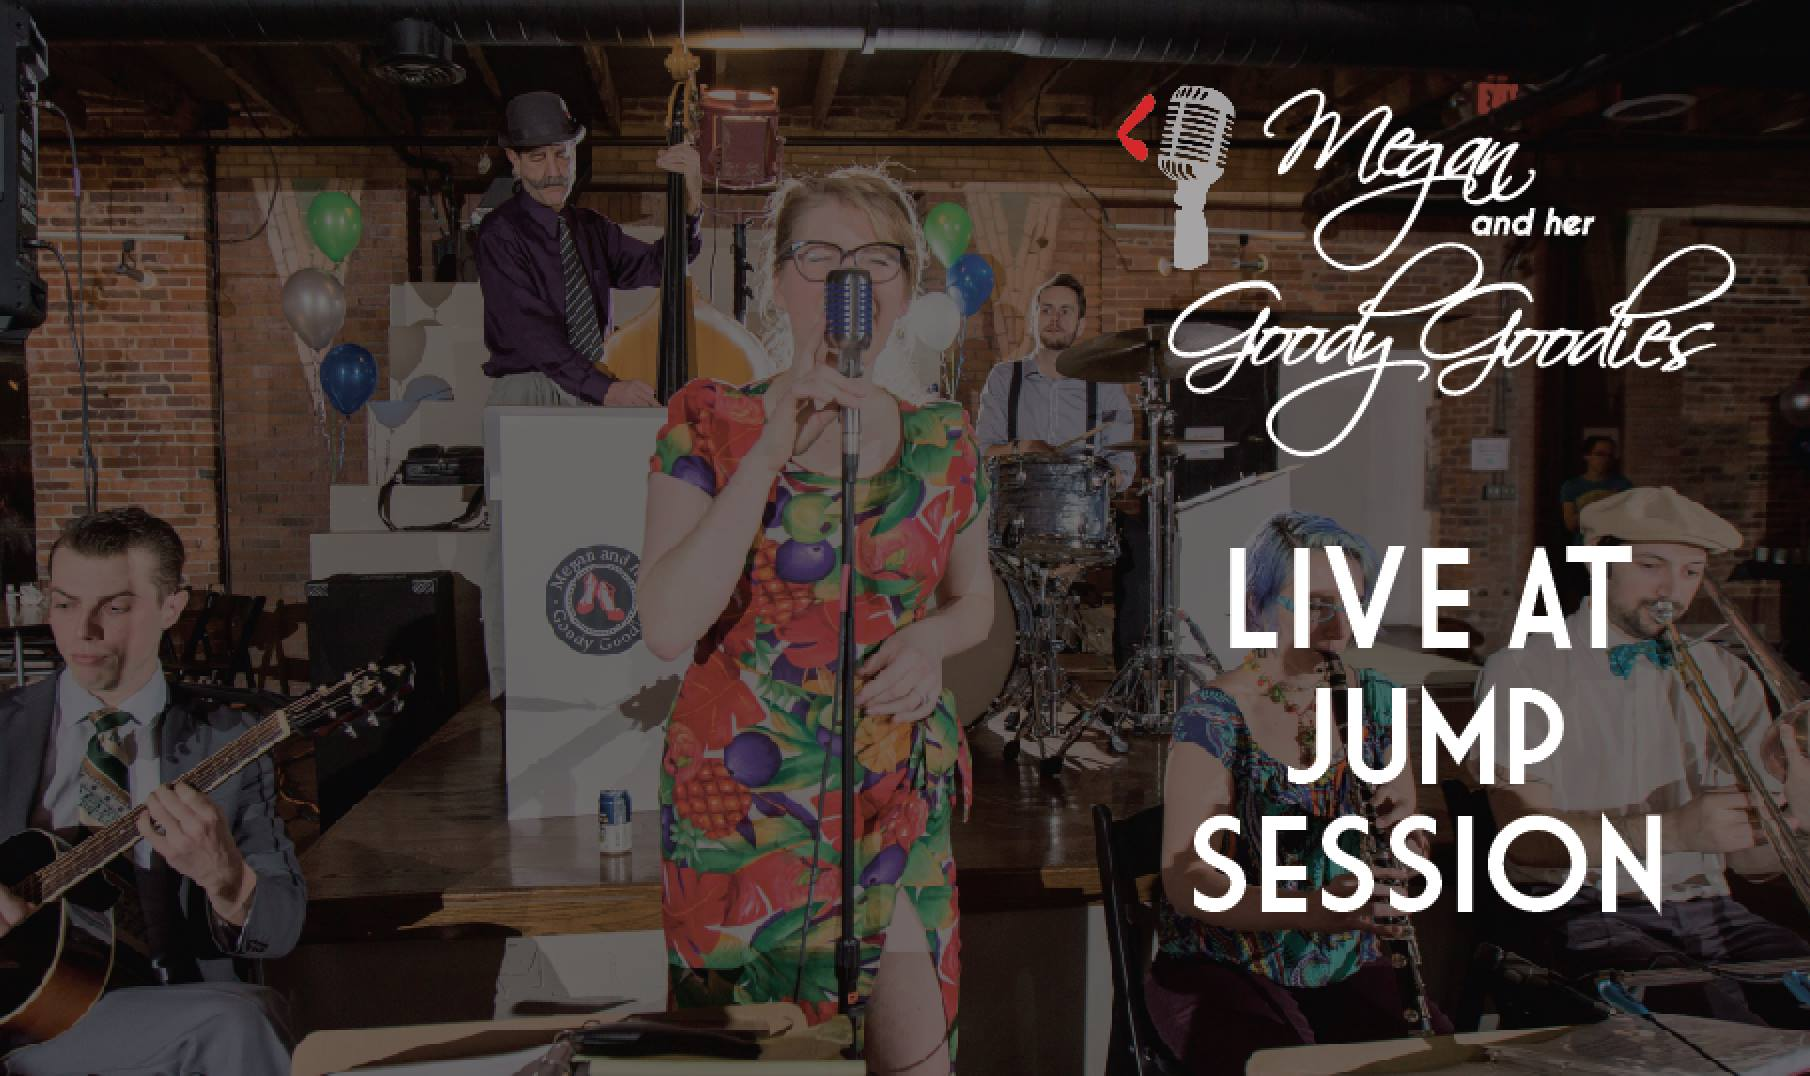 Goody Goodies Live at Jump Session